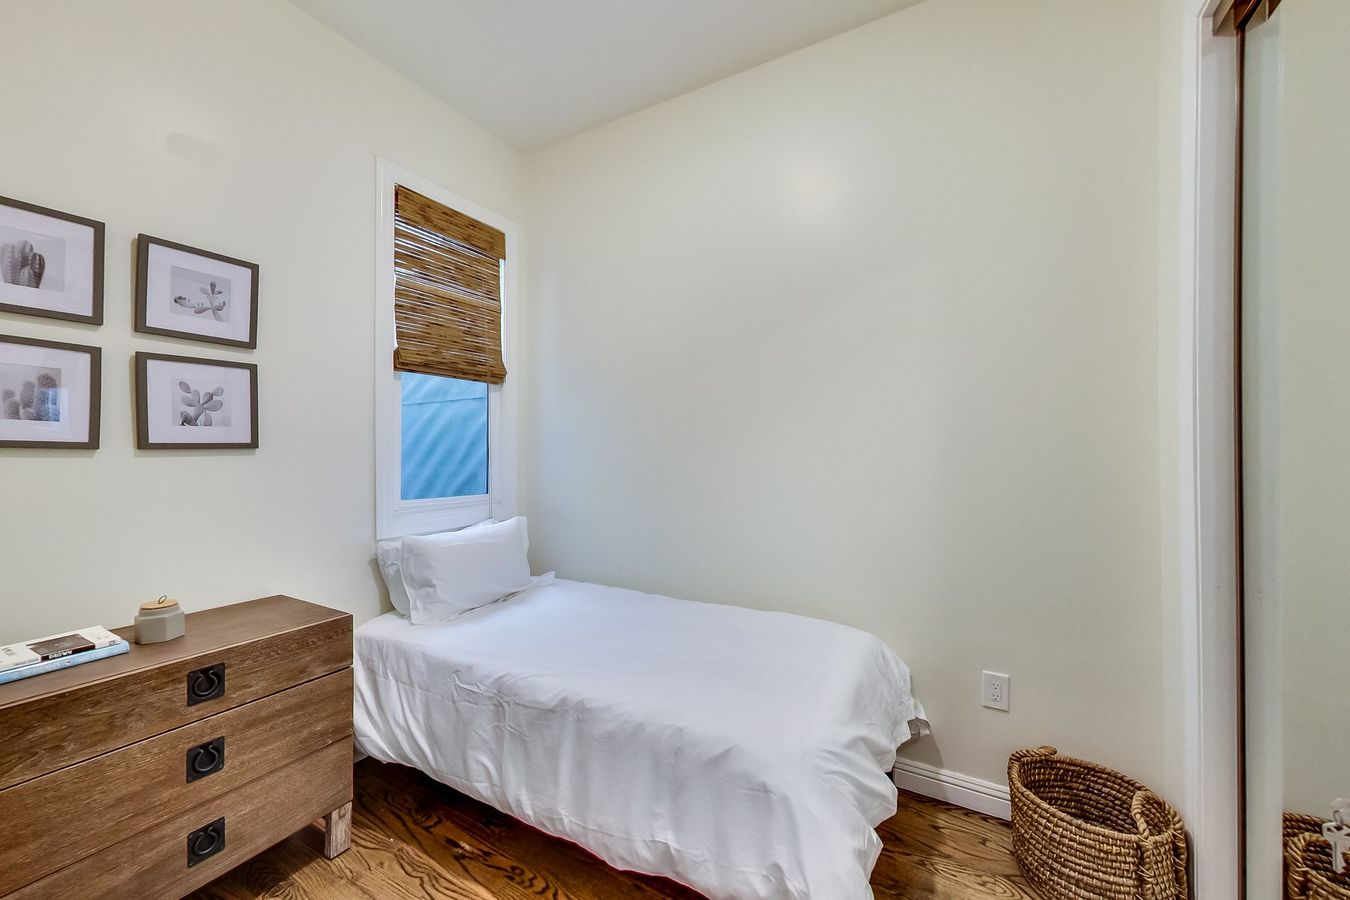 Studio 1 Bathroom House for rent at Larkin St & California St Coliving in San Francisco, CA